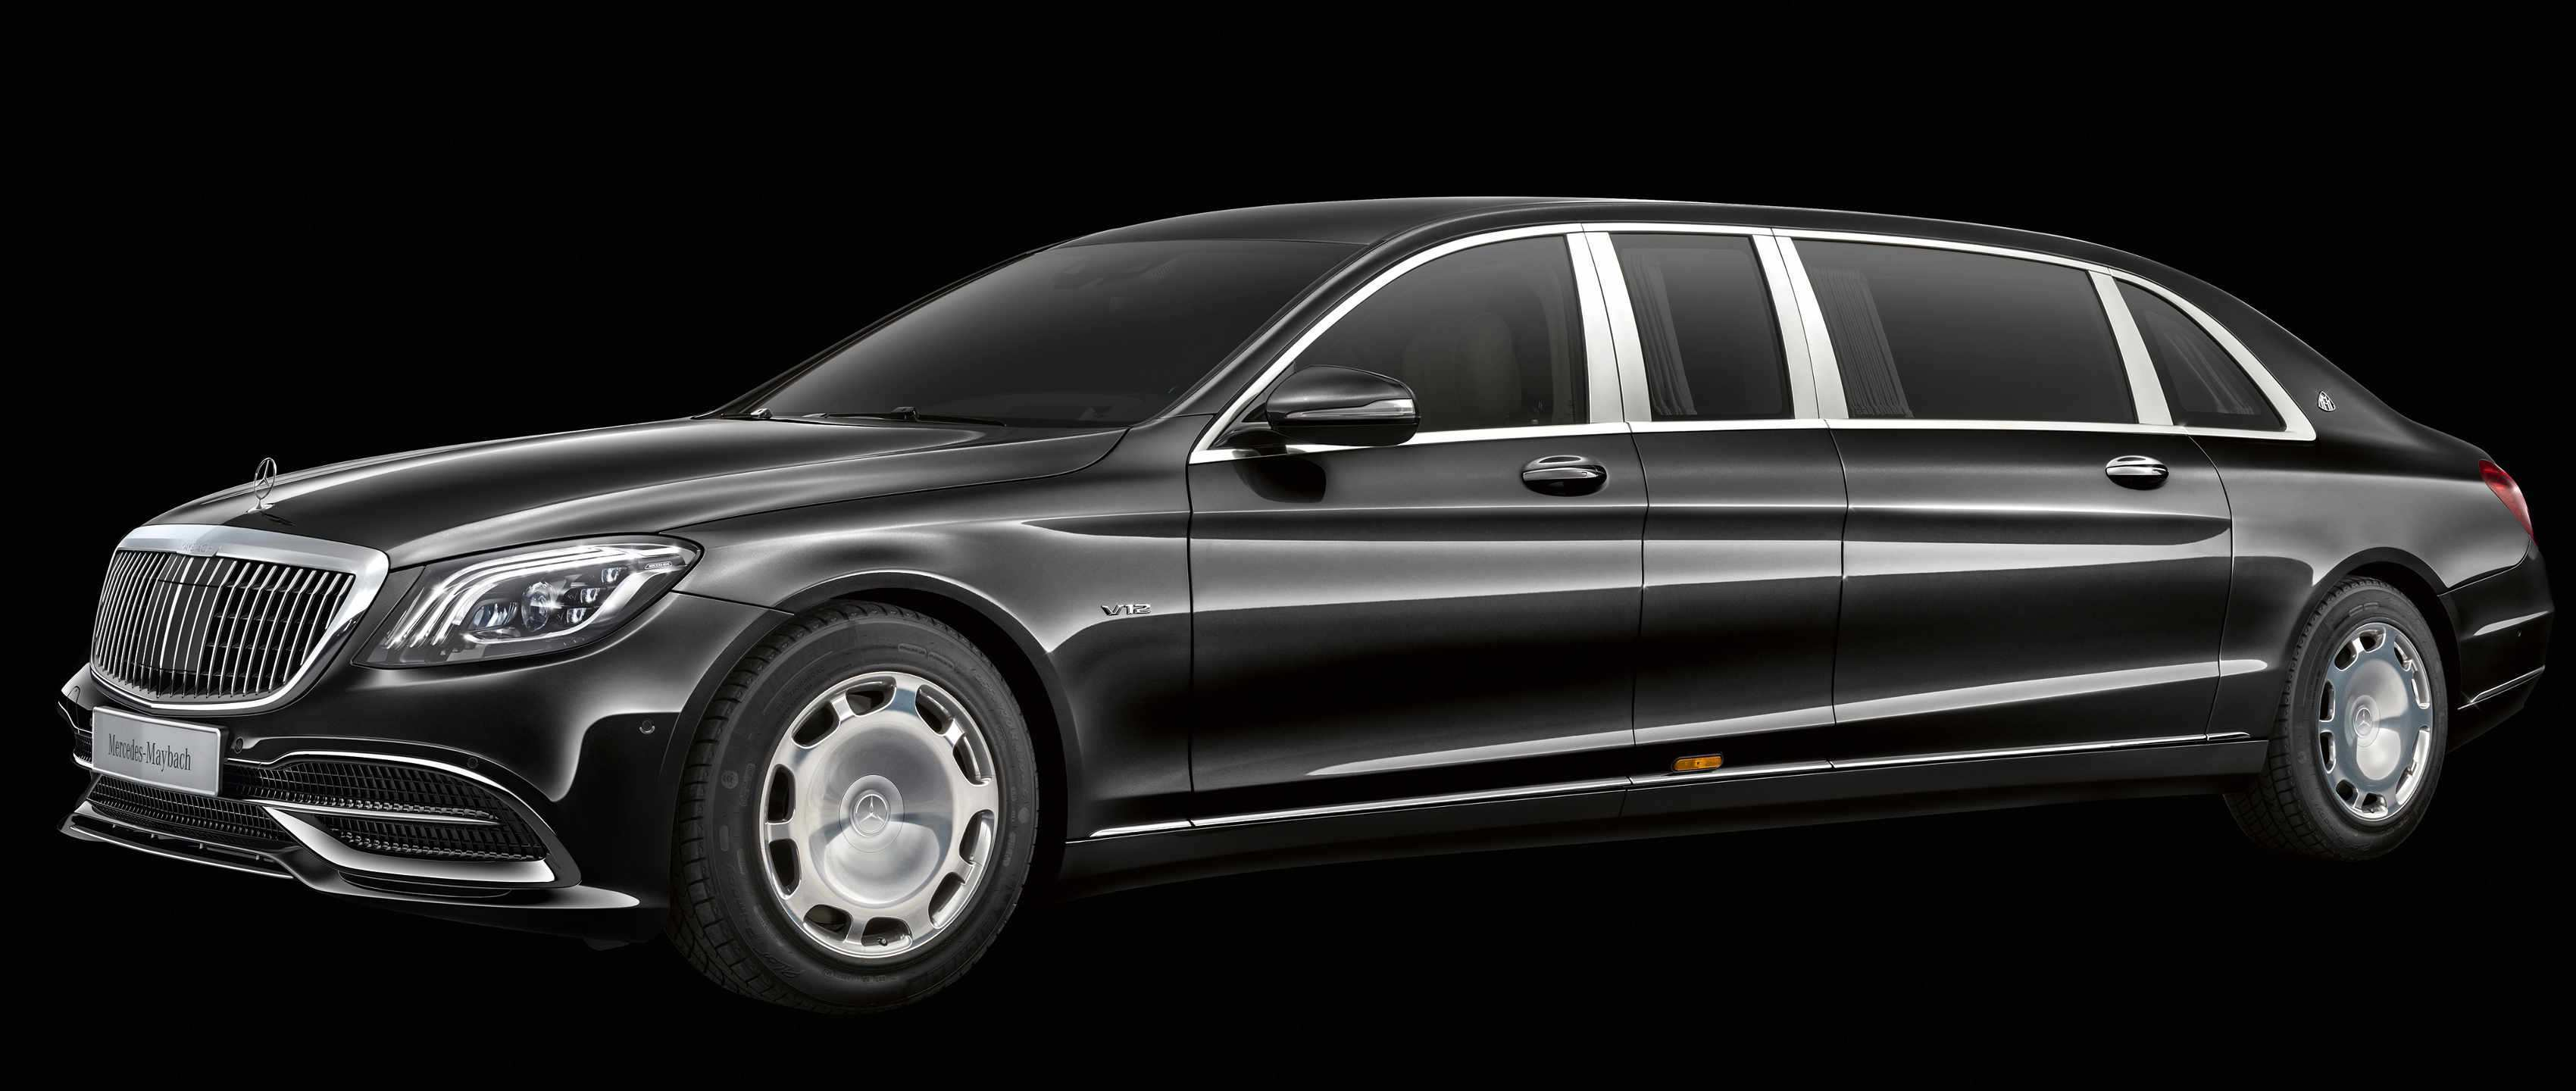 29 All New Mercedes S650 Maybach 2019 Speed Test